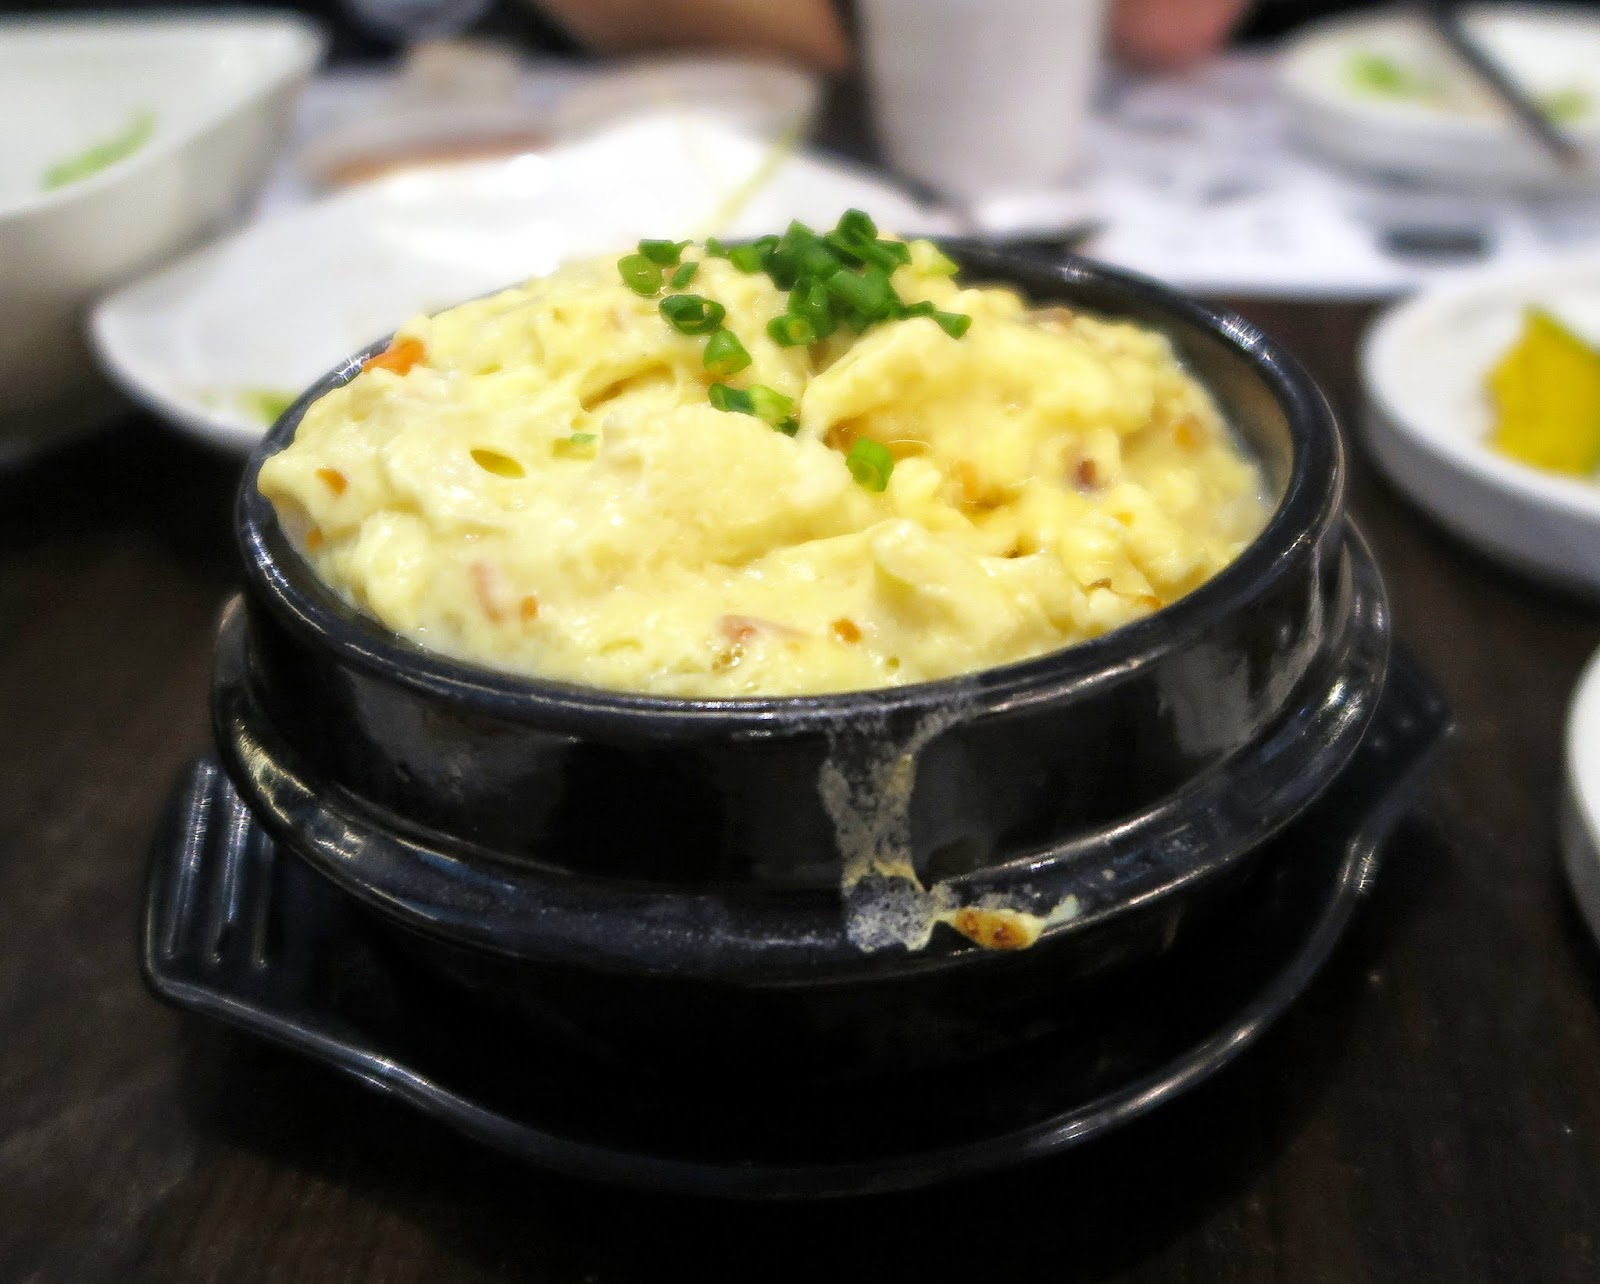 This Korean Steamed Egg Was Light And Fluffy But Not A Must Try